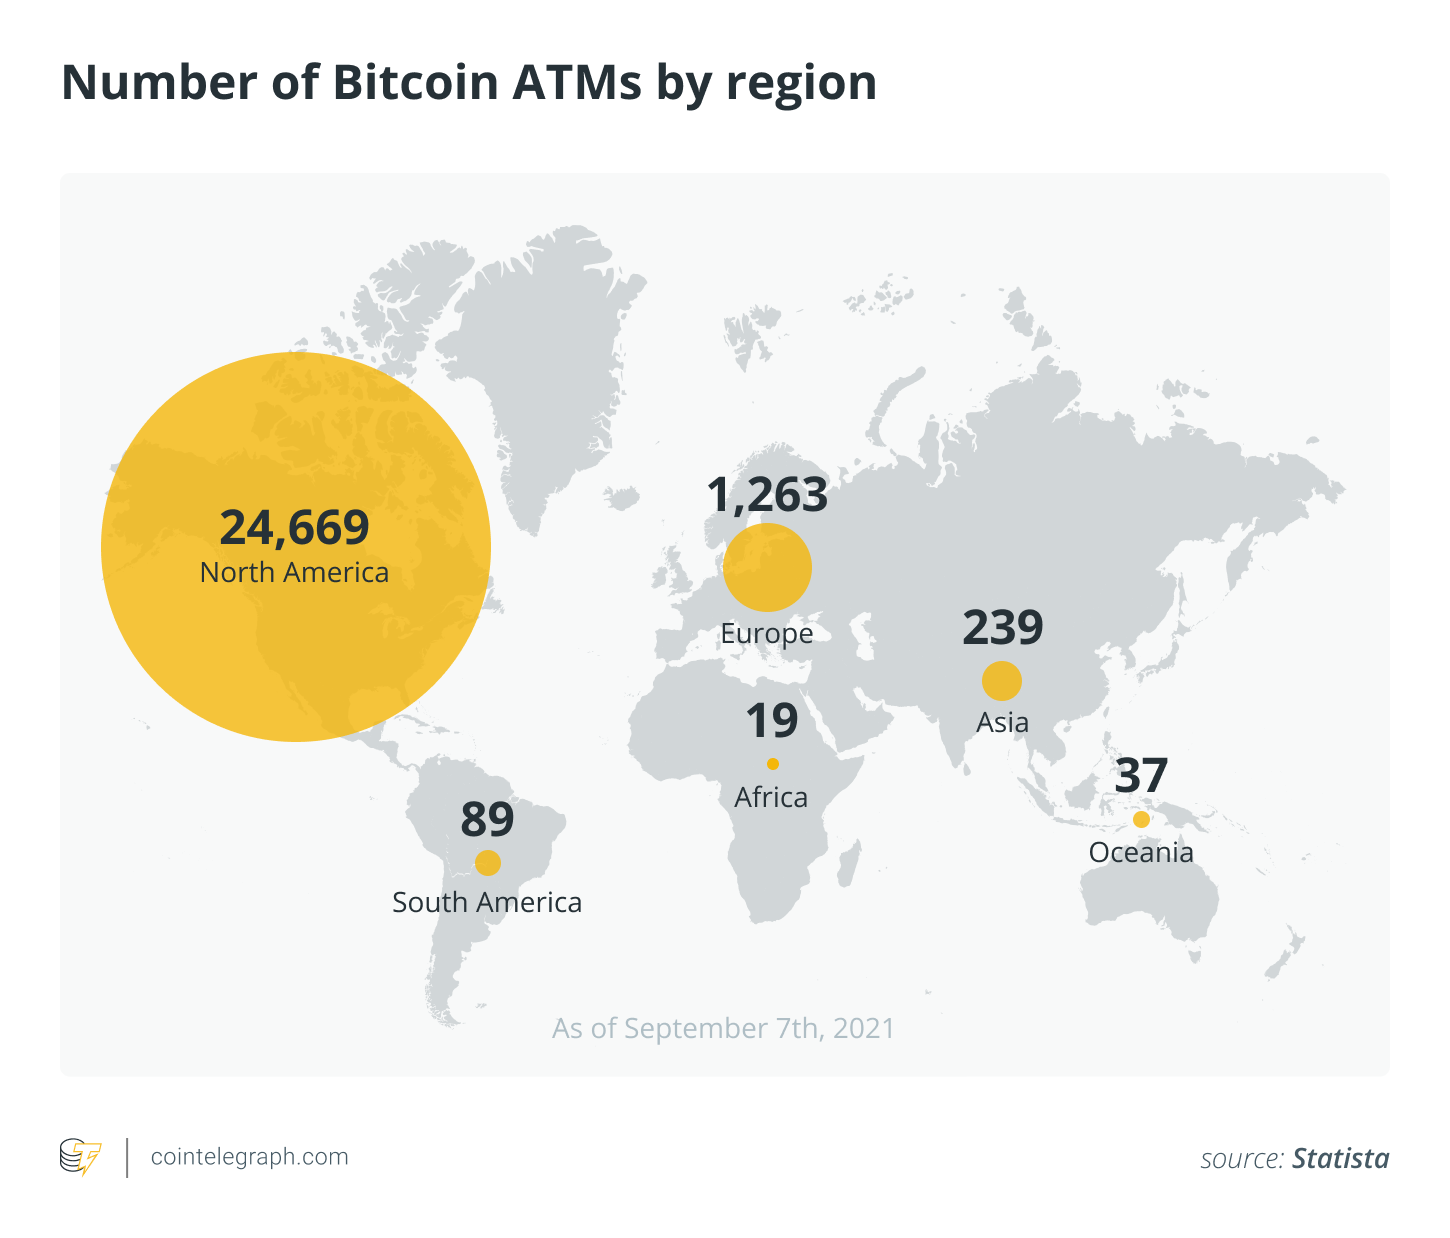 Number of Bitcoin ATMs by region